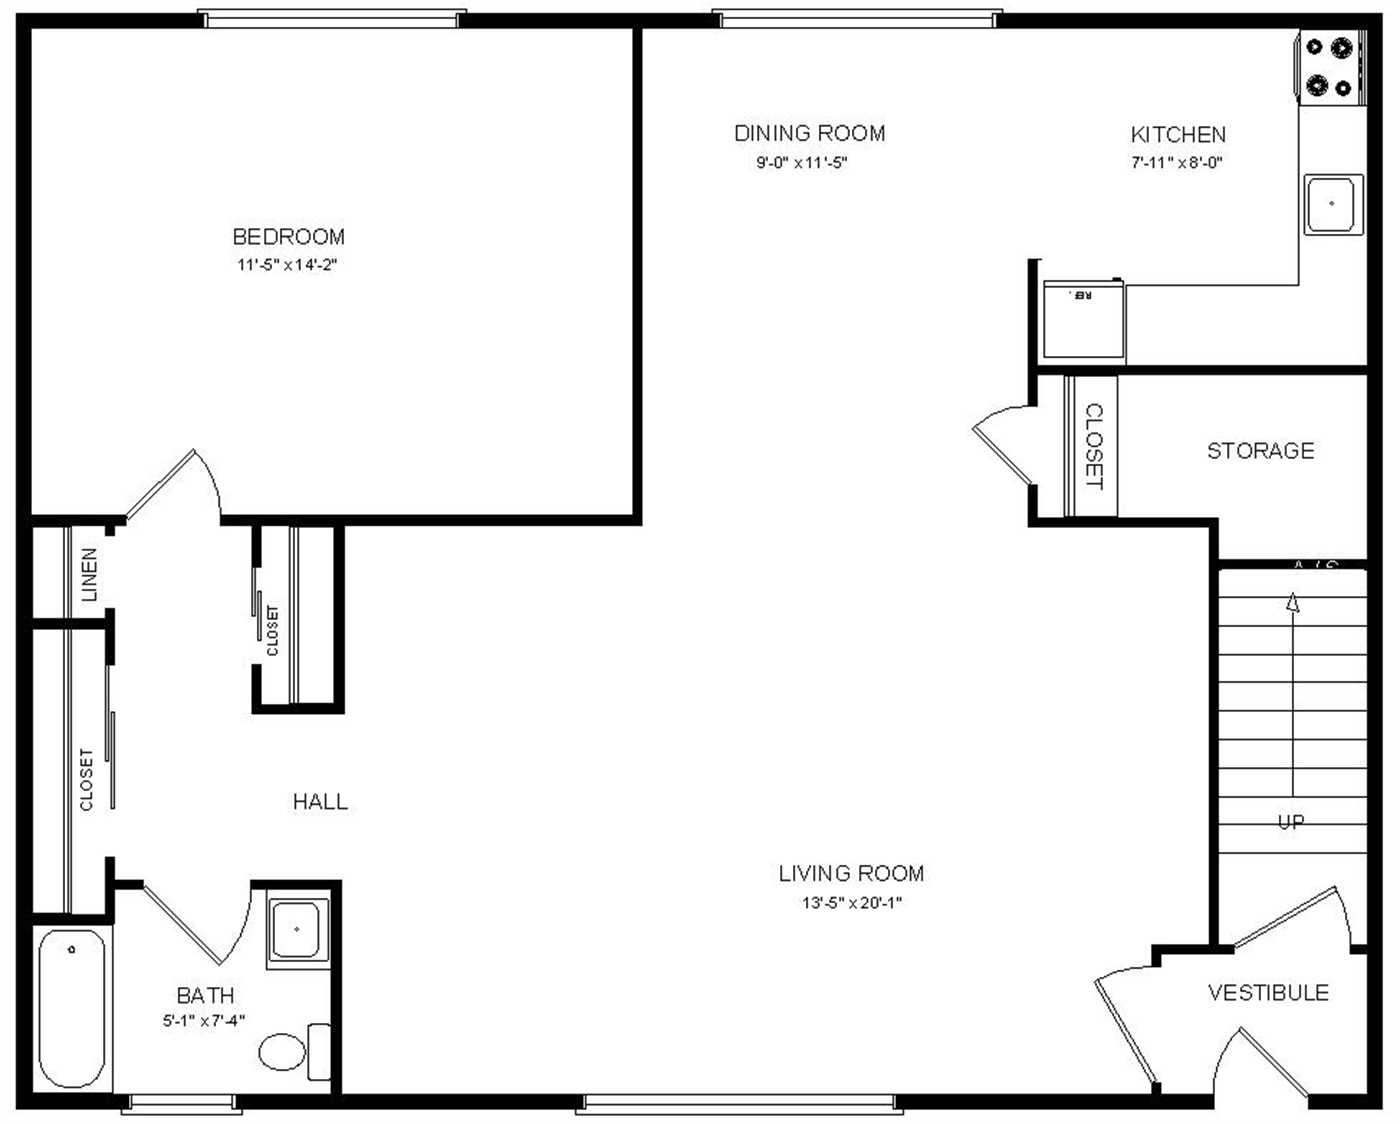 Printable floor plan templates pdf woodworking for Room design layout templates